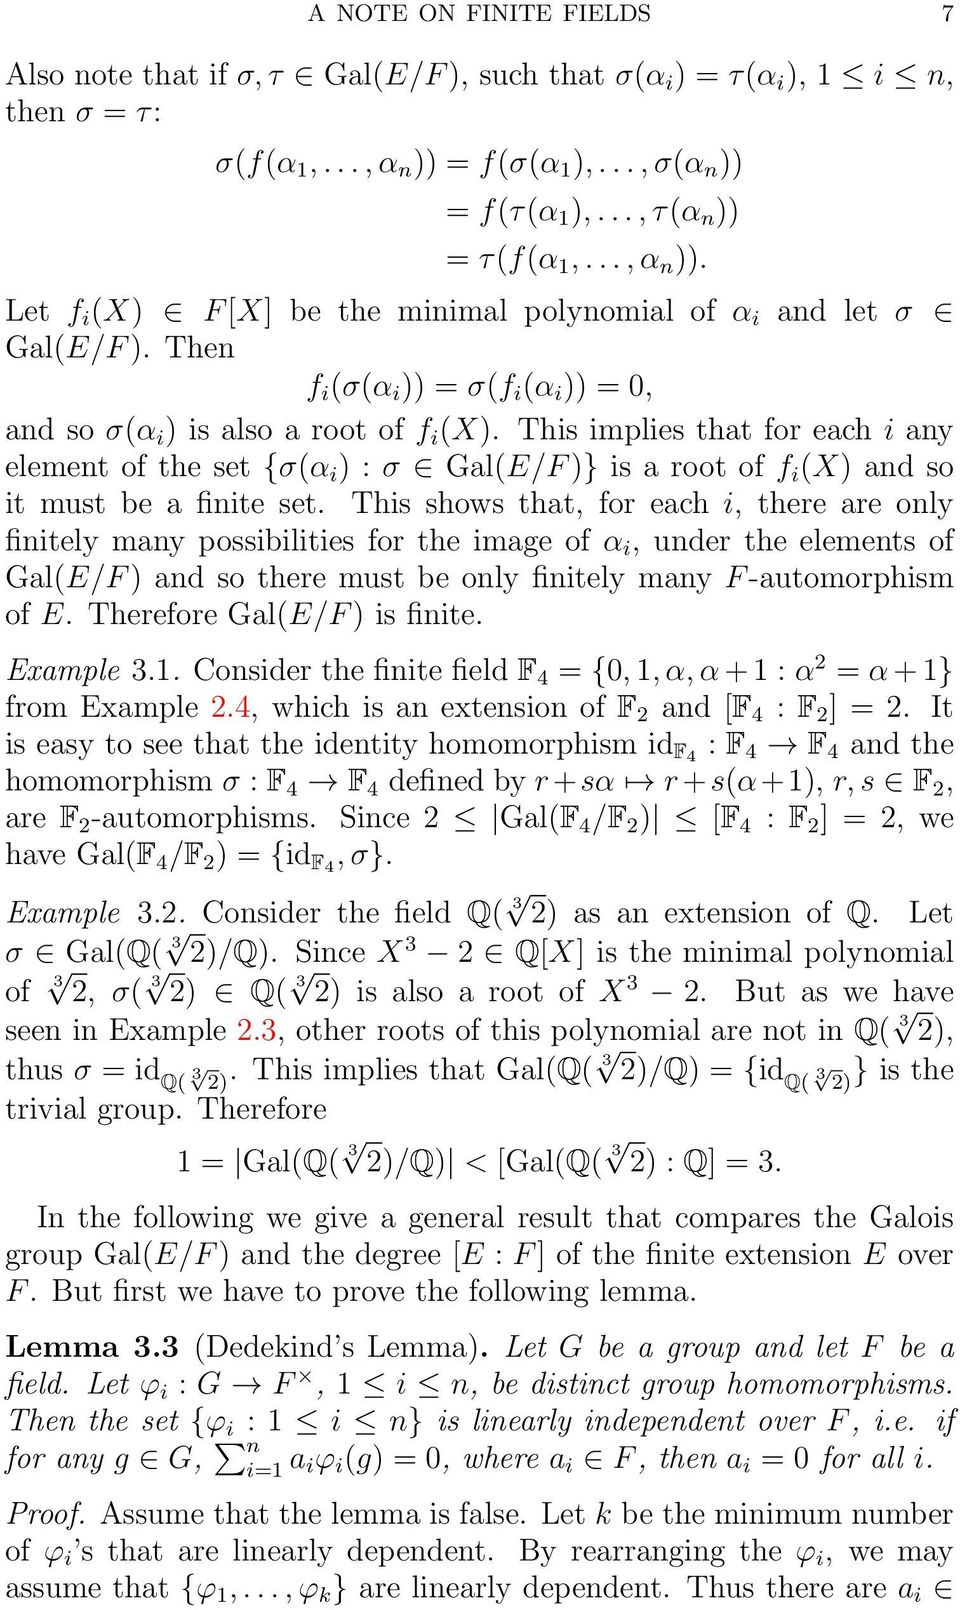 This implies that for each i any element of the set {σ(α i ) : σ Gal(E/F )} is a root of f i (X) and so it must be a finite set.